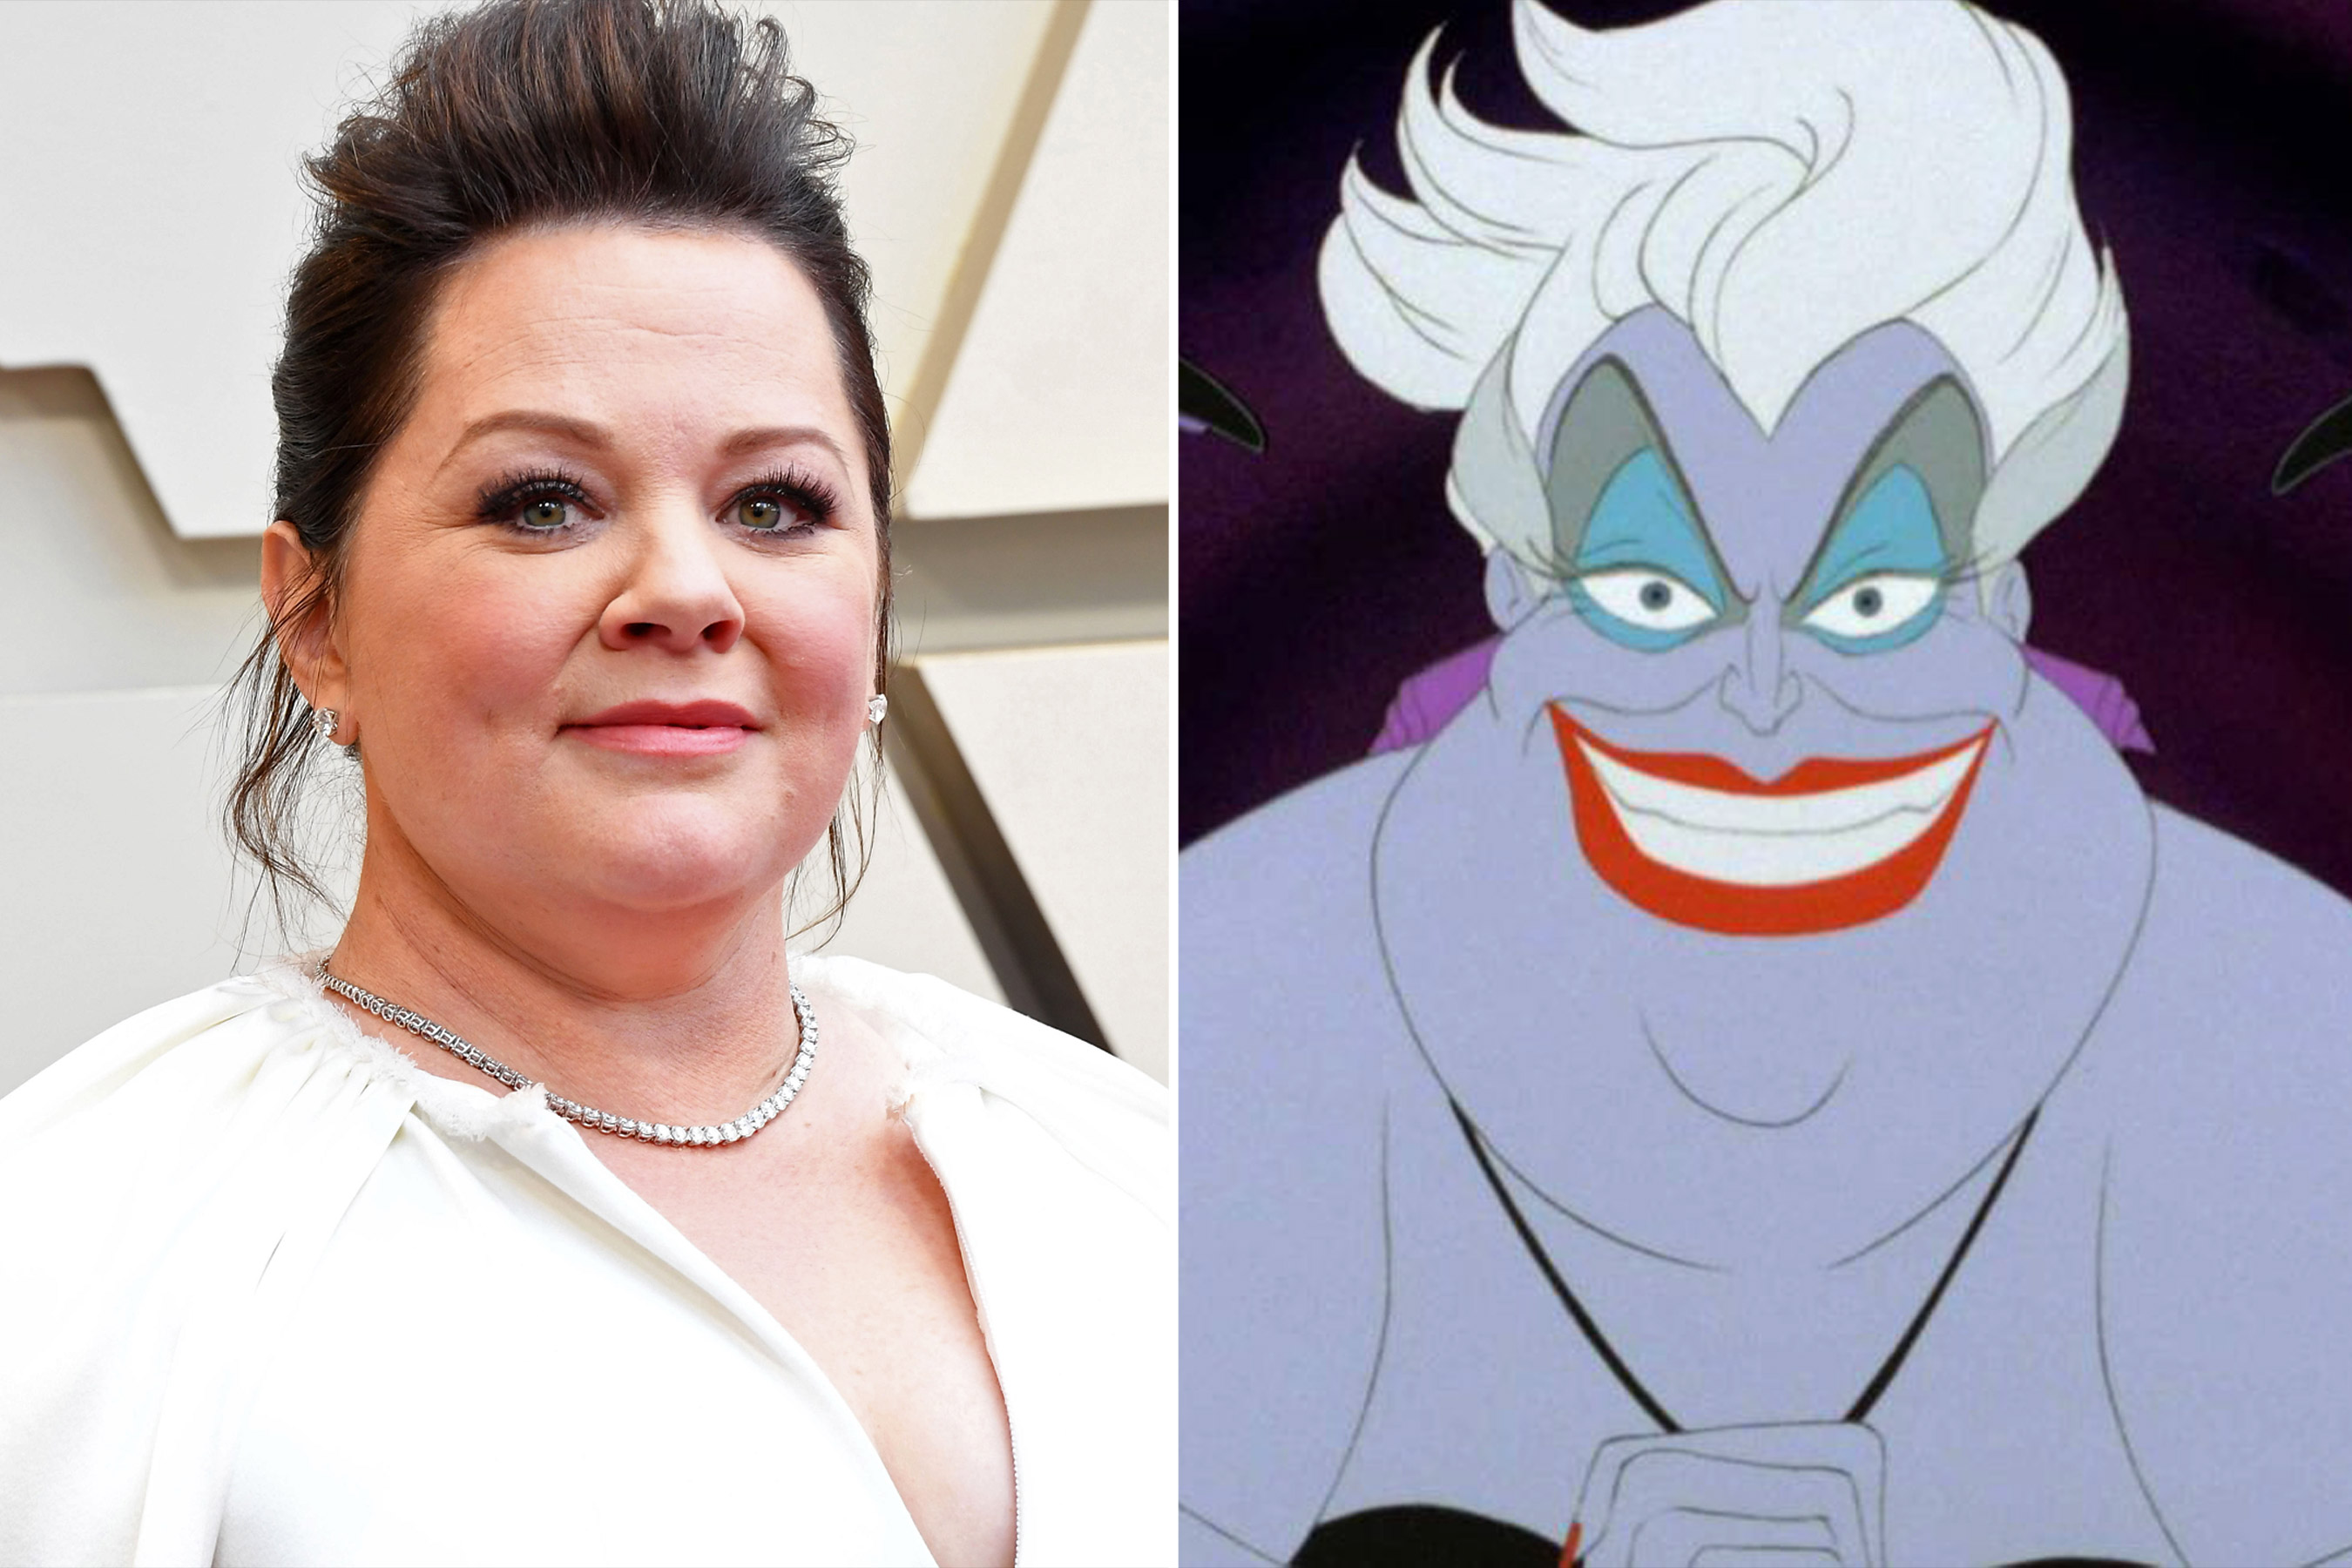 Melissa McCarthy Is in Talks to Star as Ursula in Live-Action Remake of The Little Mermaid